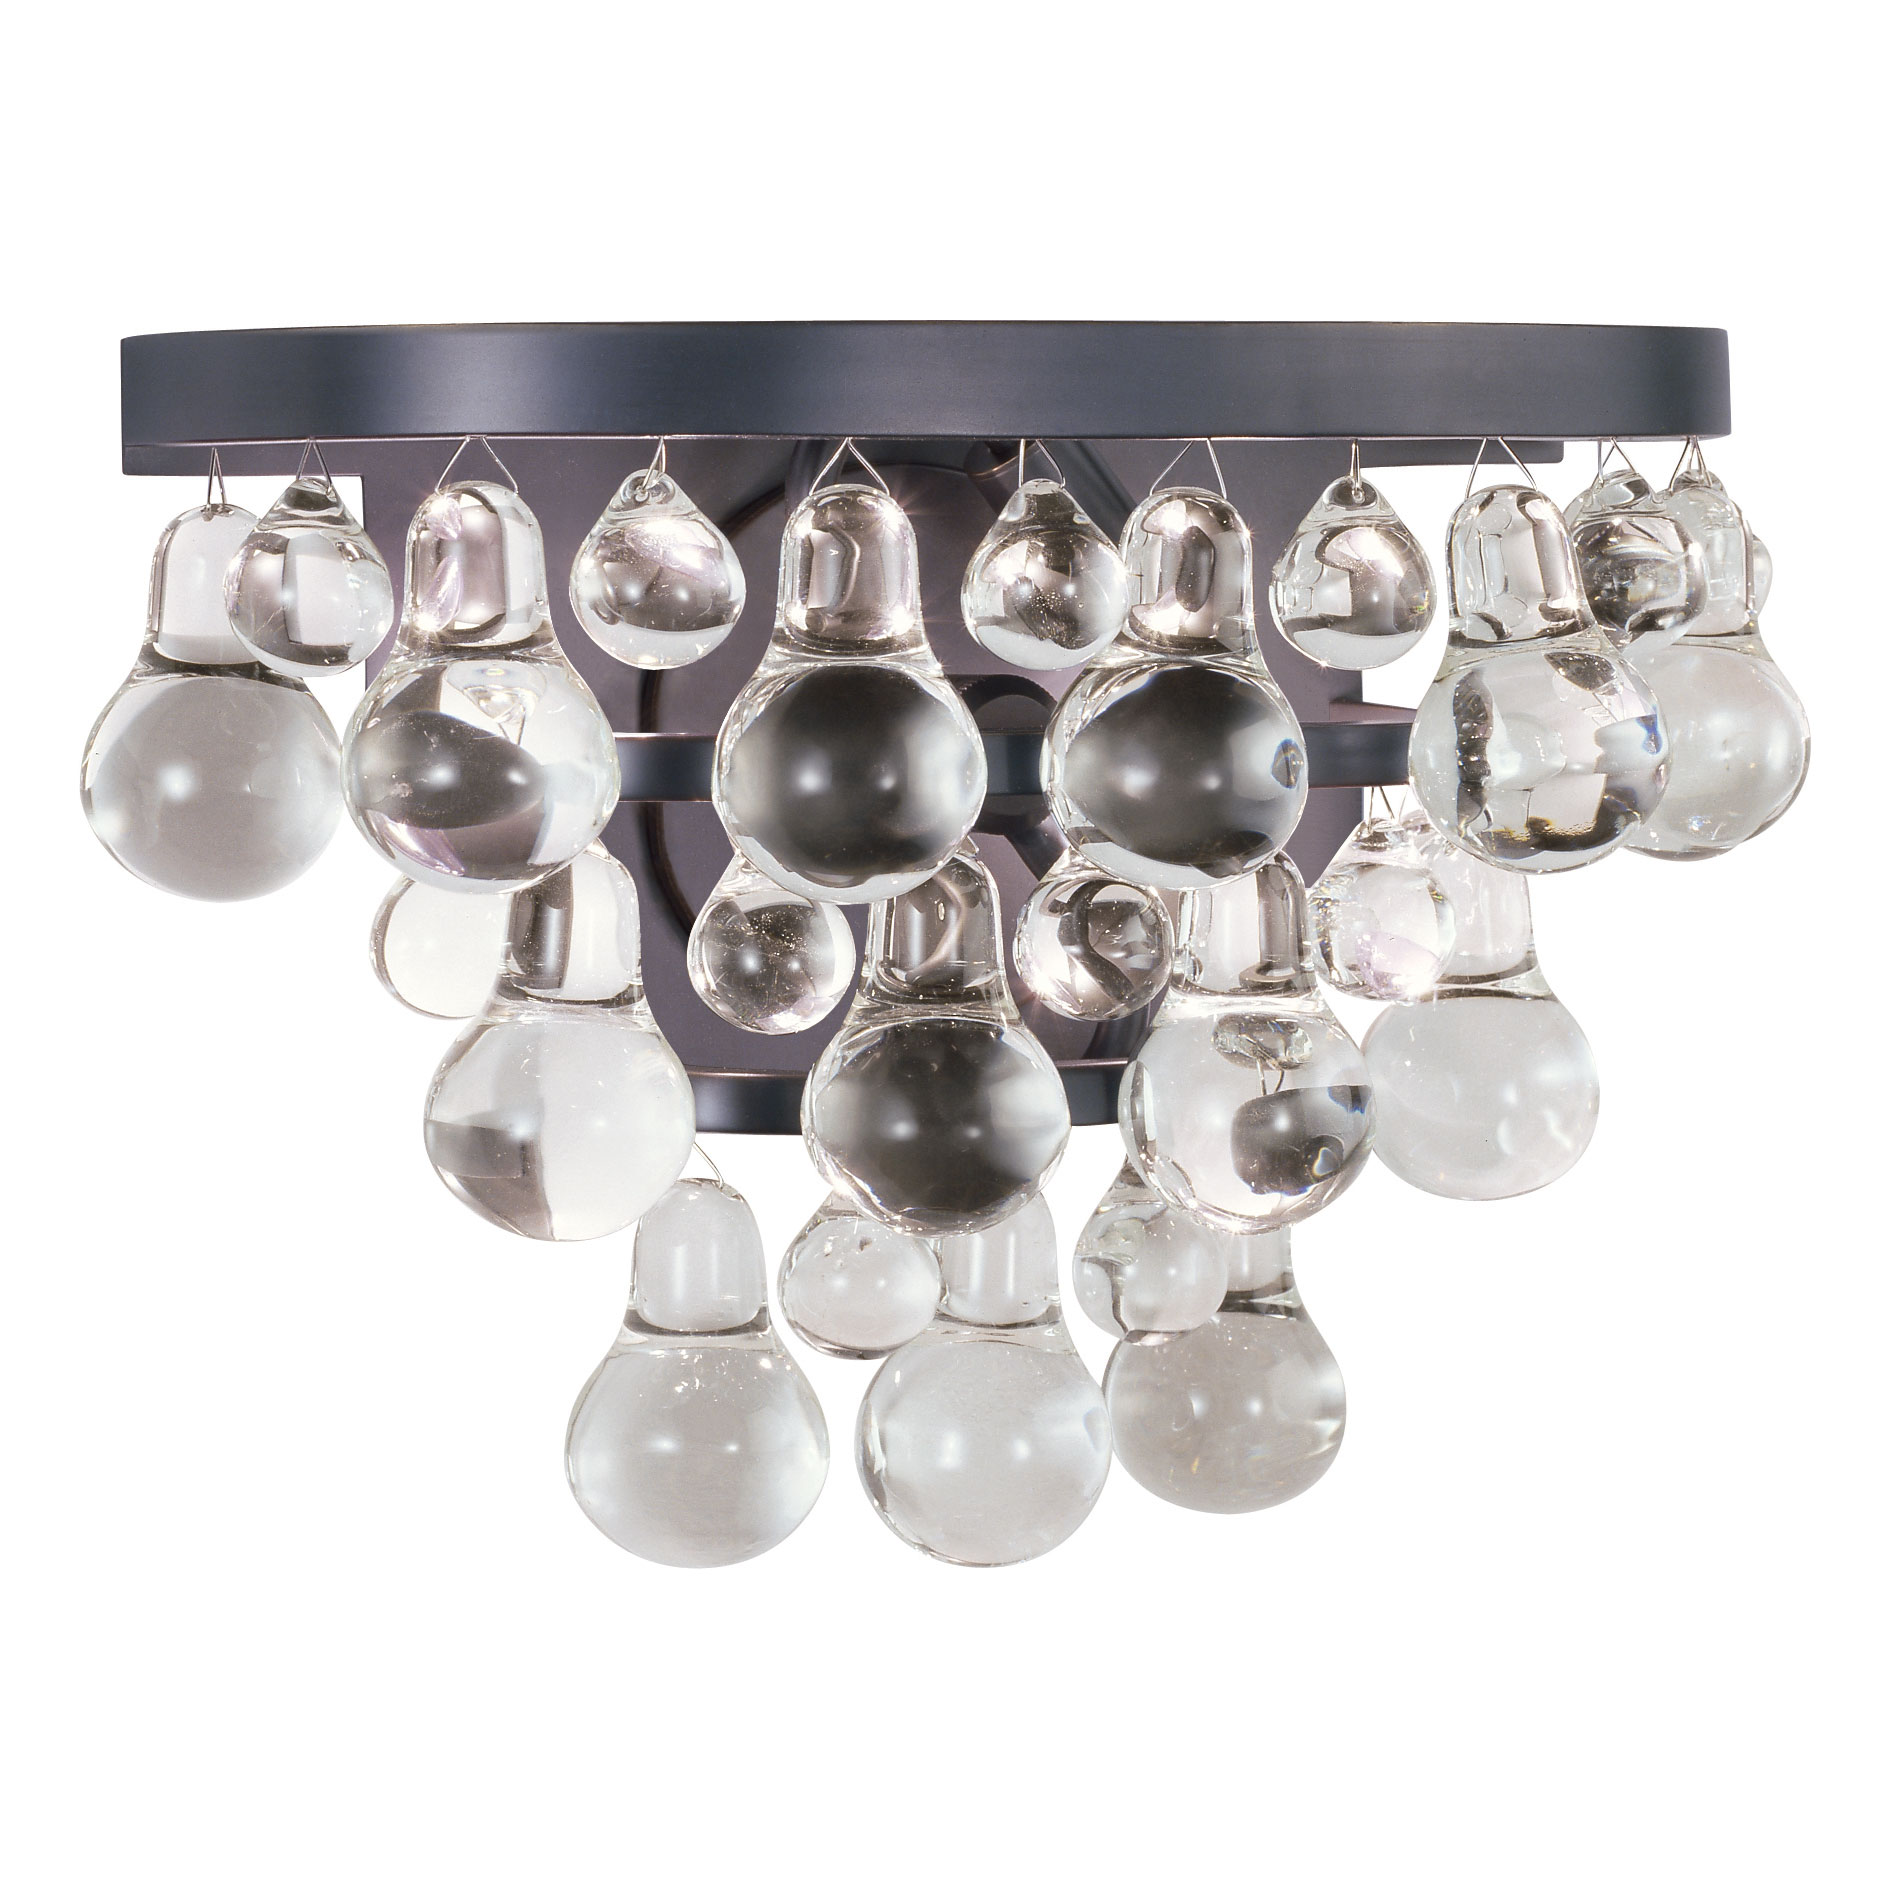 Bling Wall Sconce by Robert Abbey